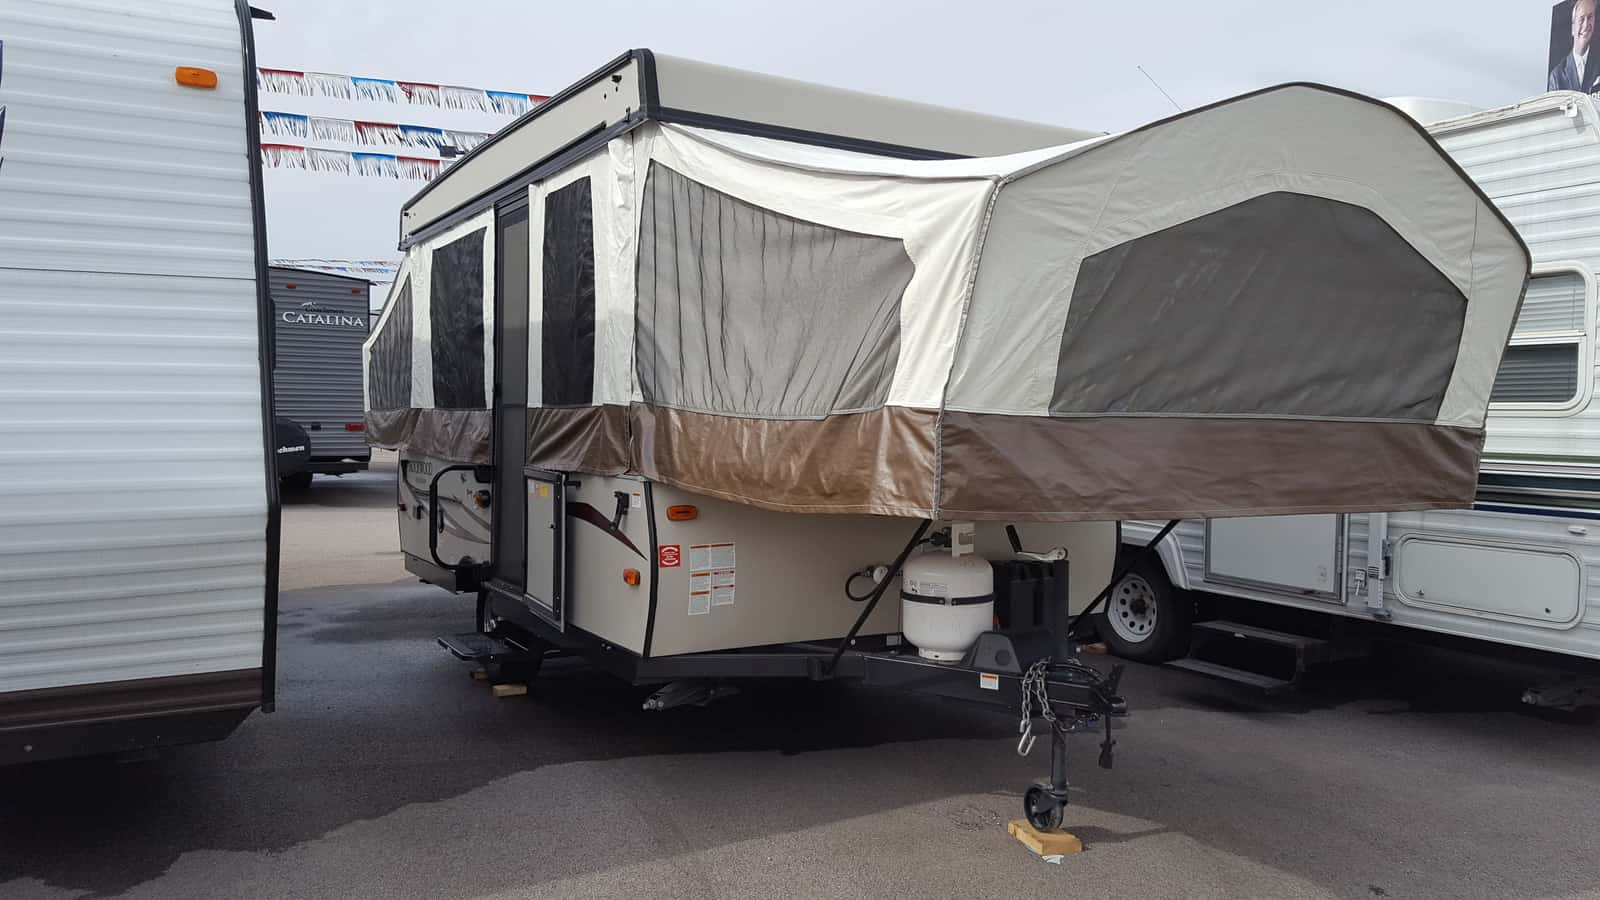 USED 2017 Forest River Rockwood 2280 - American RV